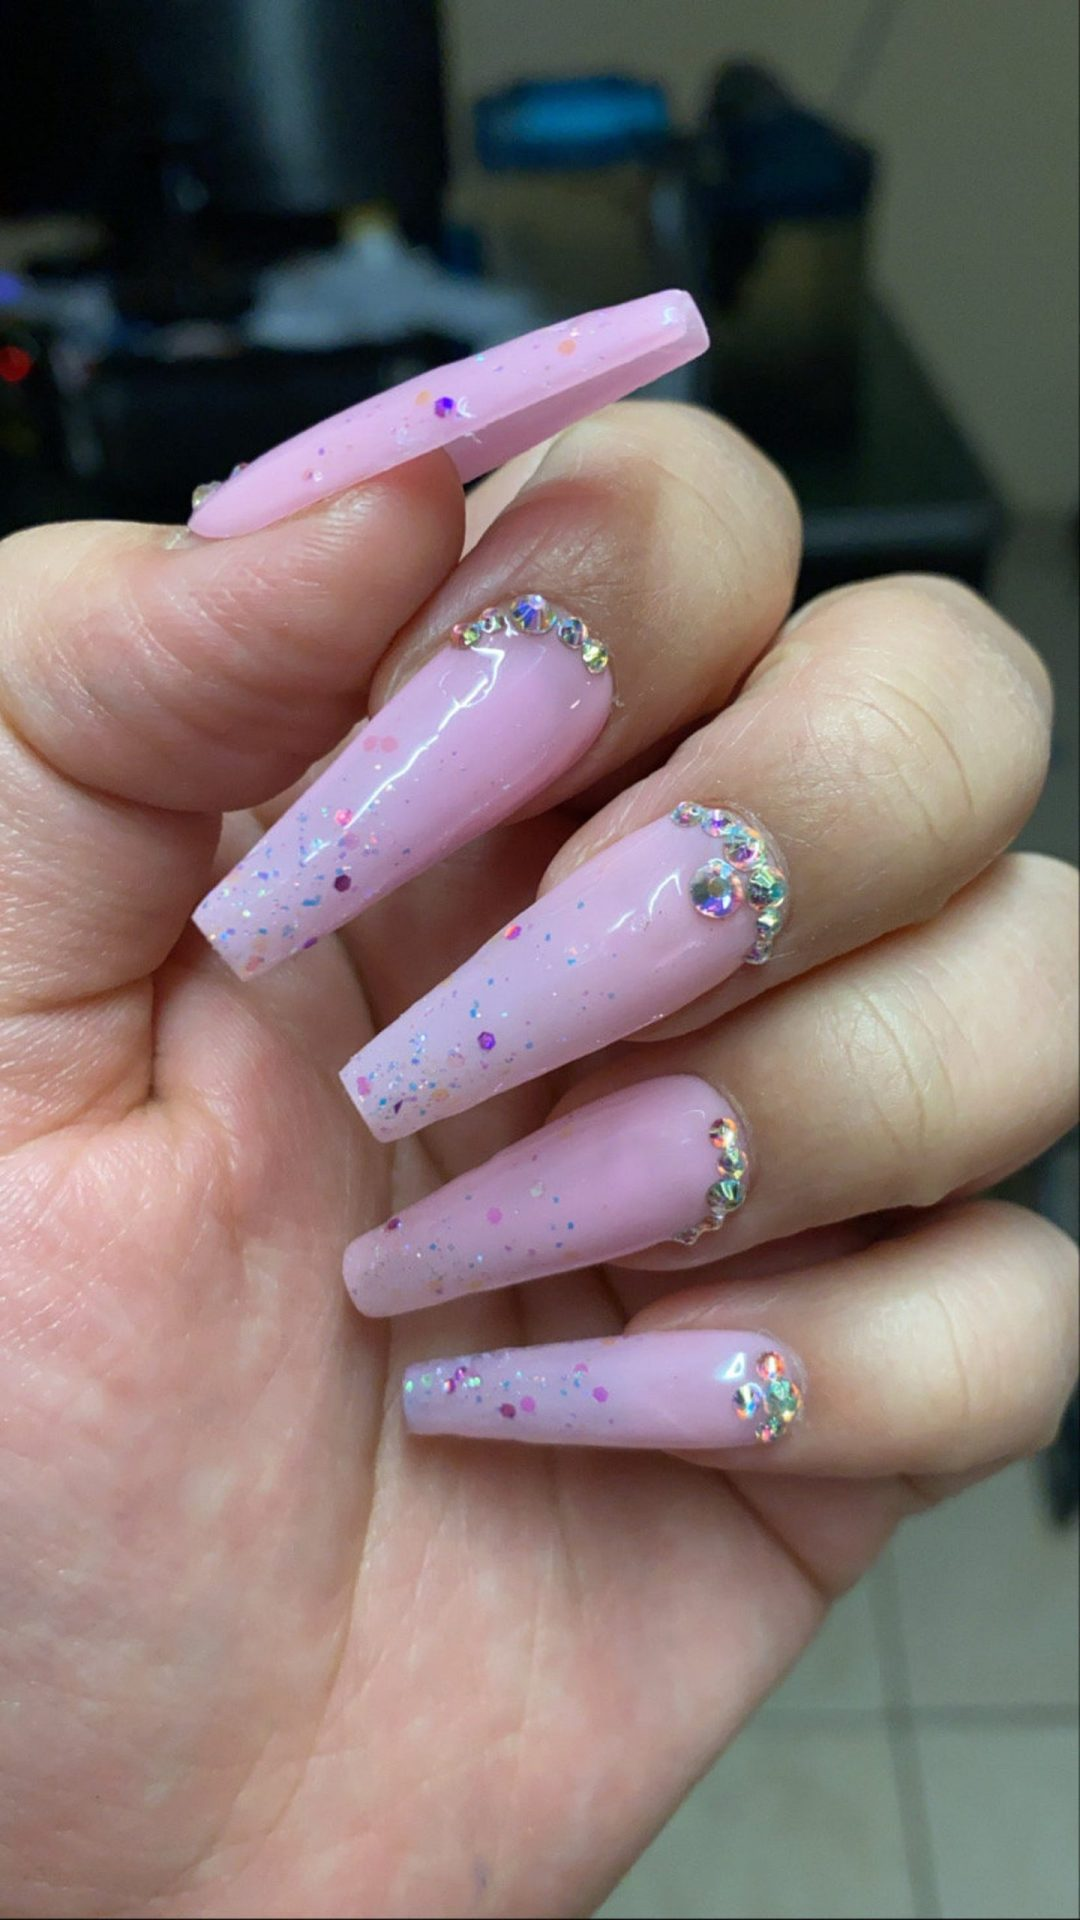 Baby pink confetti nails with rhinestones